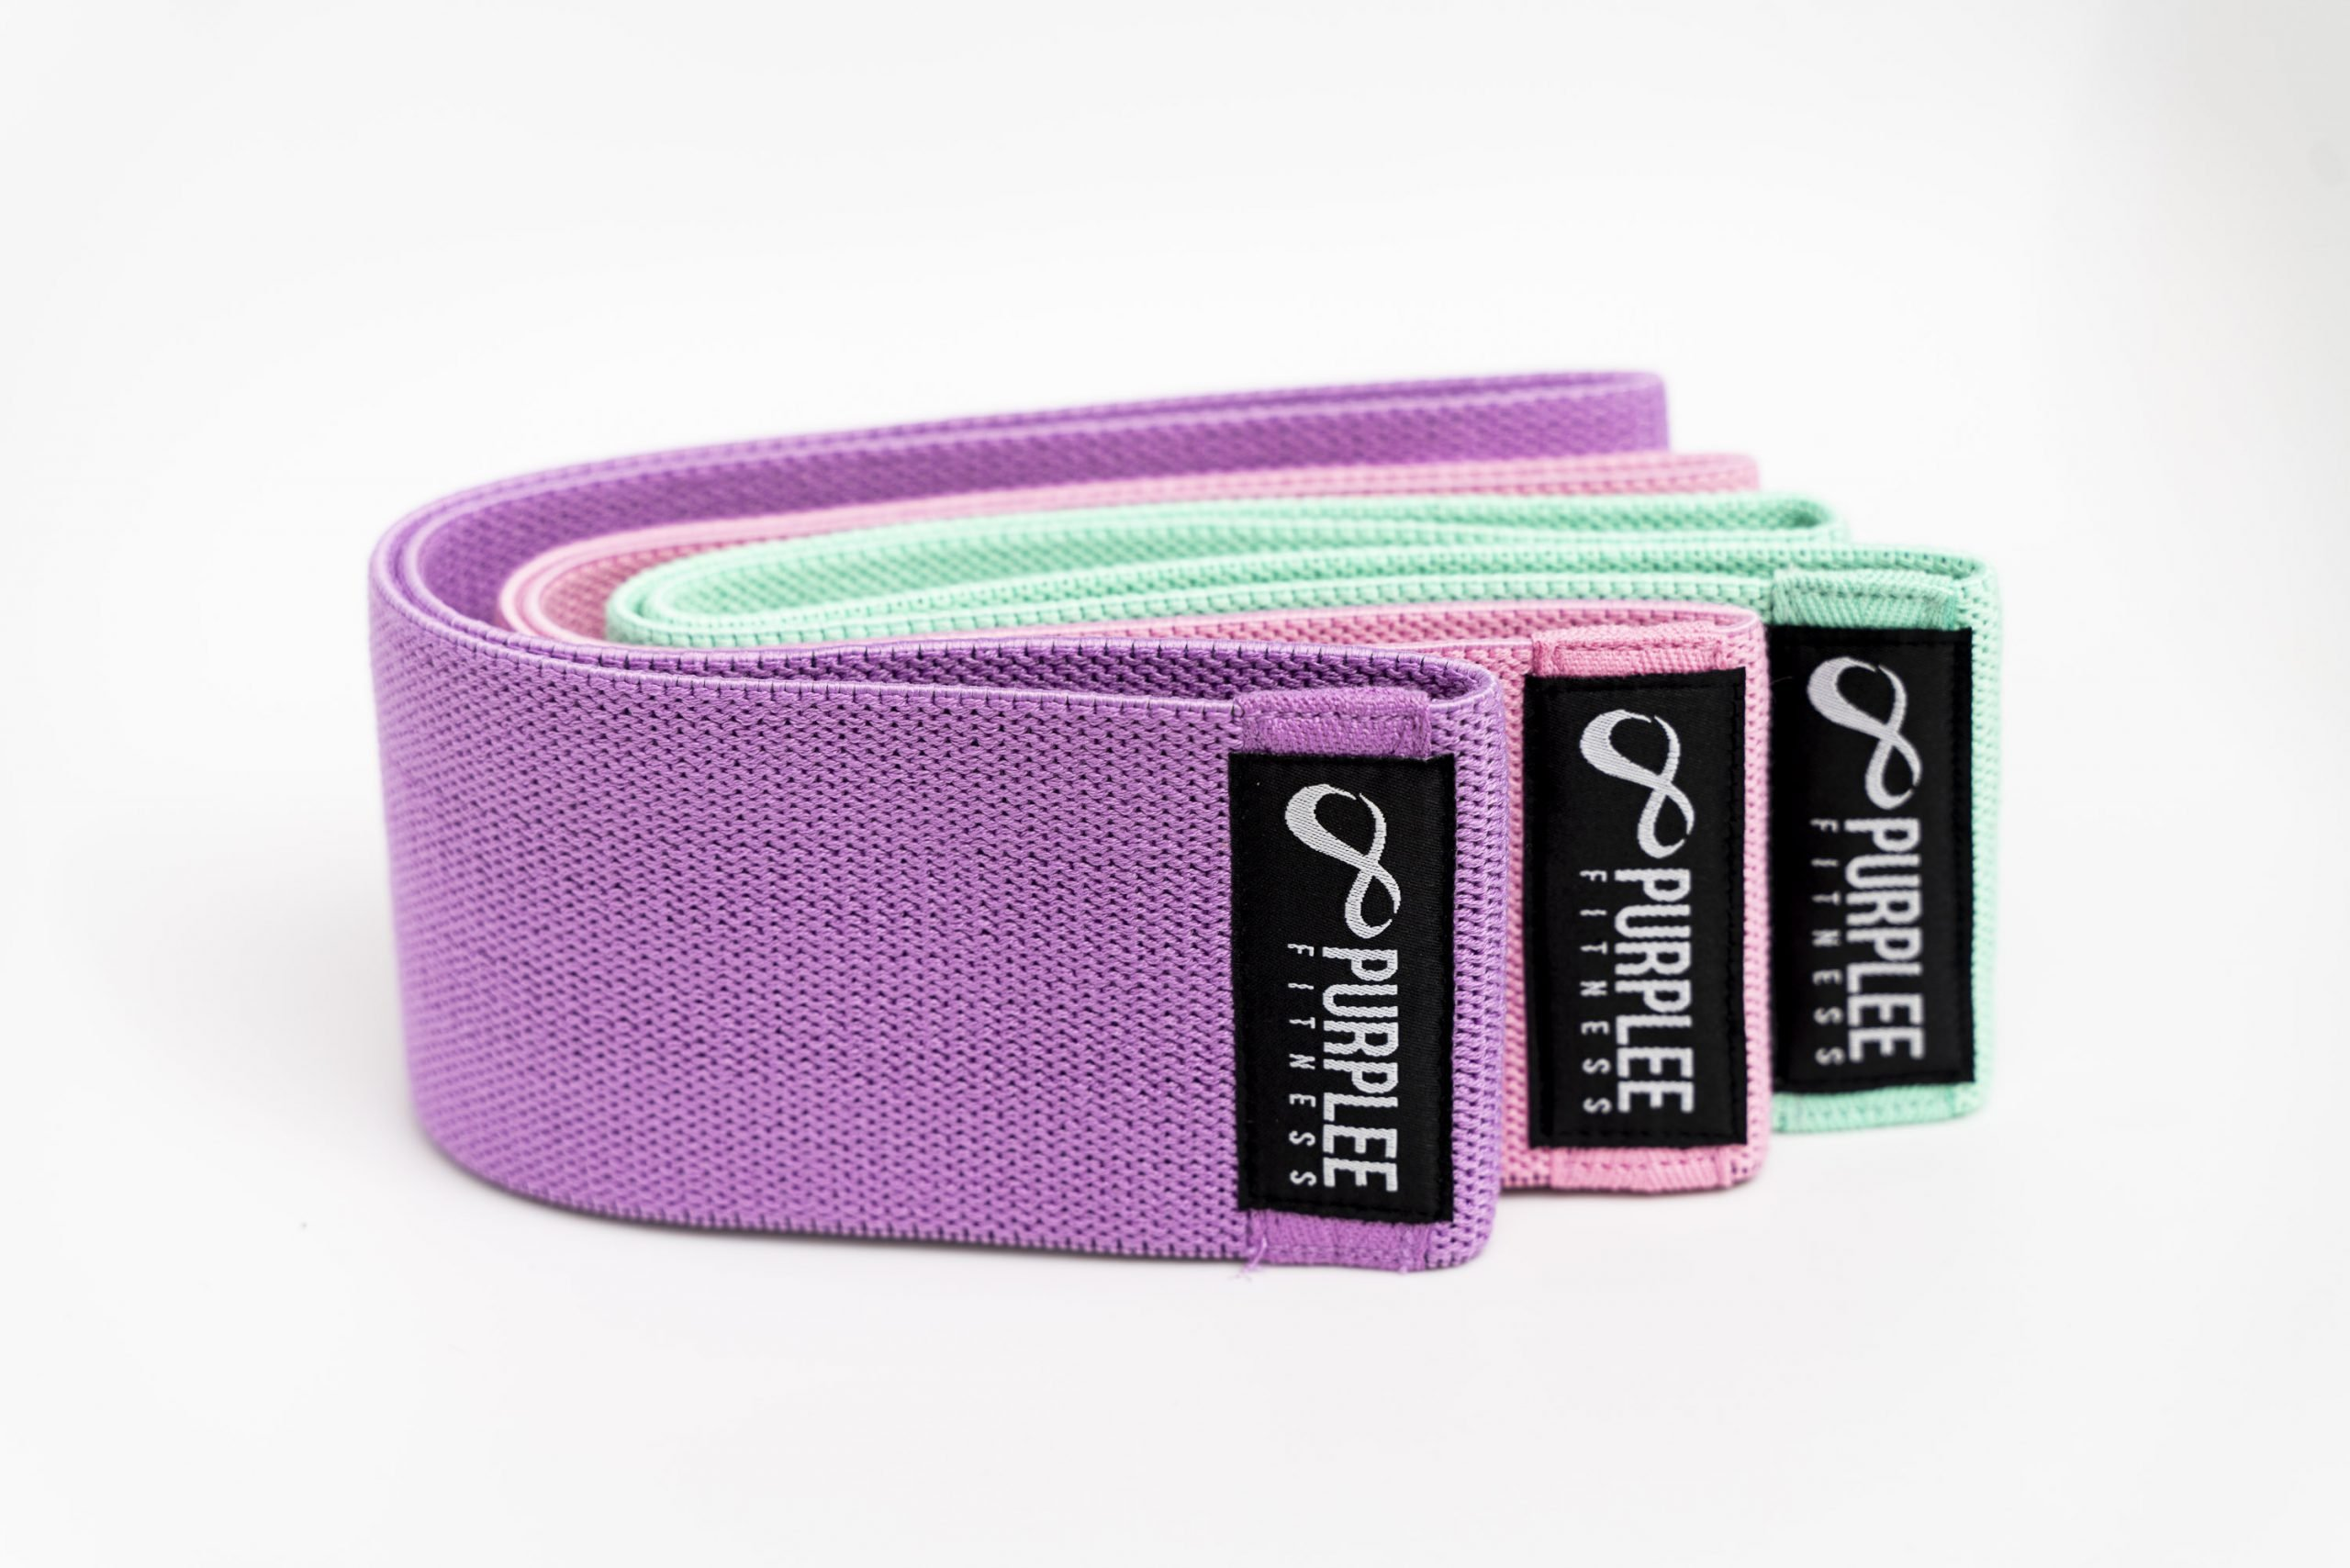 Purplee Fitness Resistance Bands For Glute And Core Exercises 029